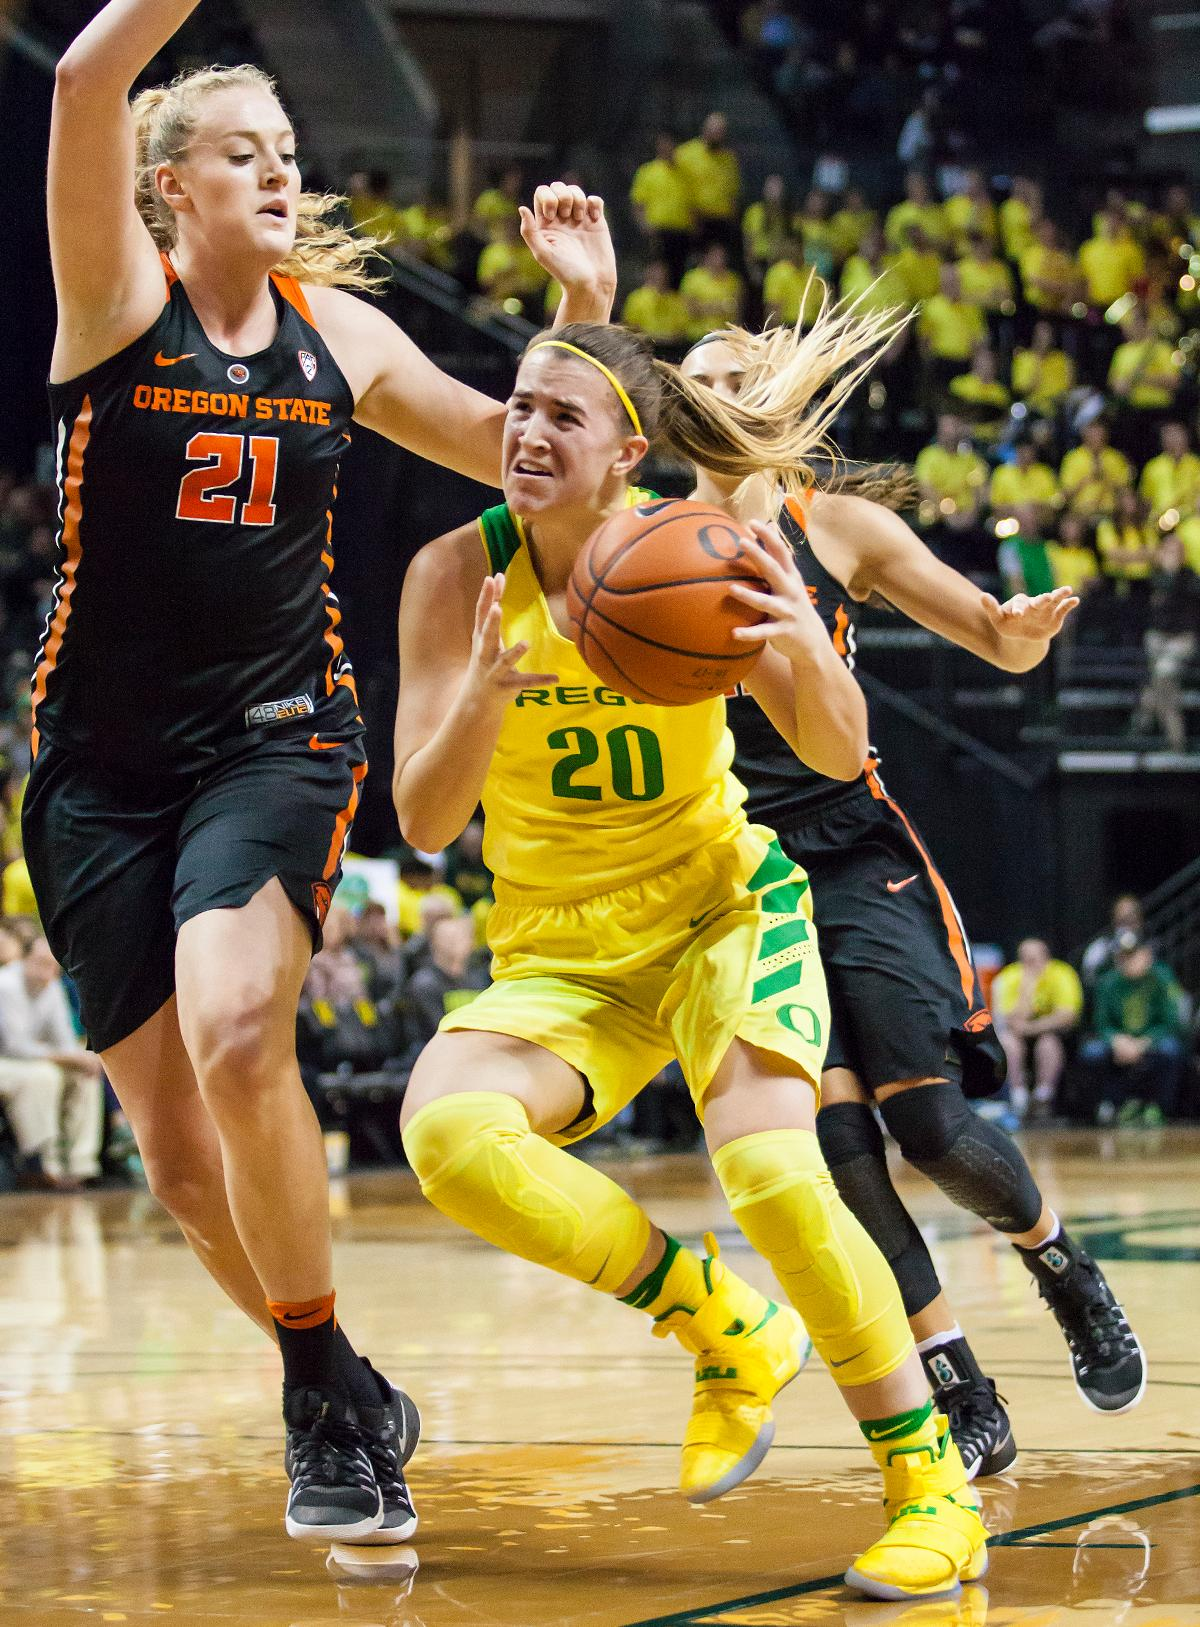 Oregon guard Sabrina Ionescu (#20) dodges around Oregon State center Marie Gulich (#21). The Oregon Ducks lost 40 to 43 against the Oregon State Beavers after a tightly matched 4th quarter. Photo by Ben Lonergan, Oregon News Lab